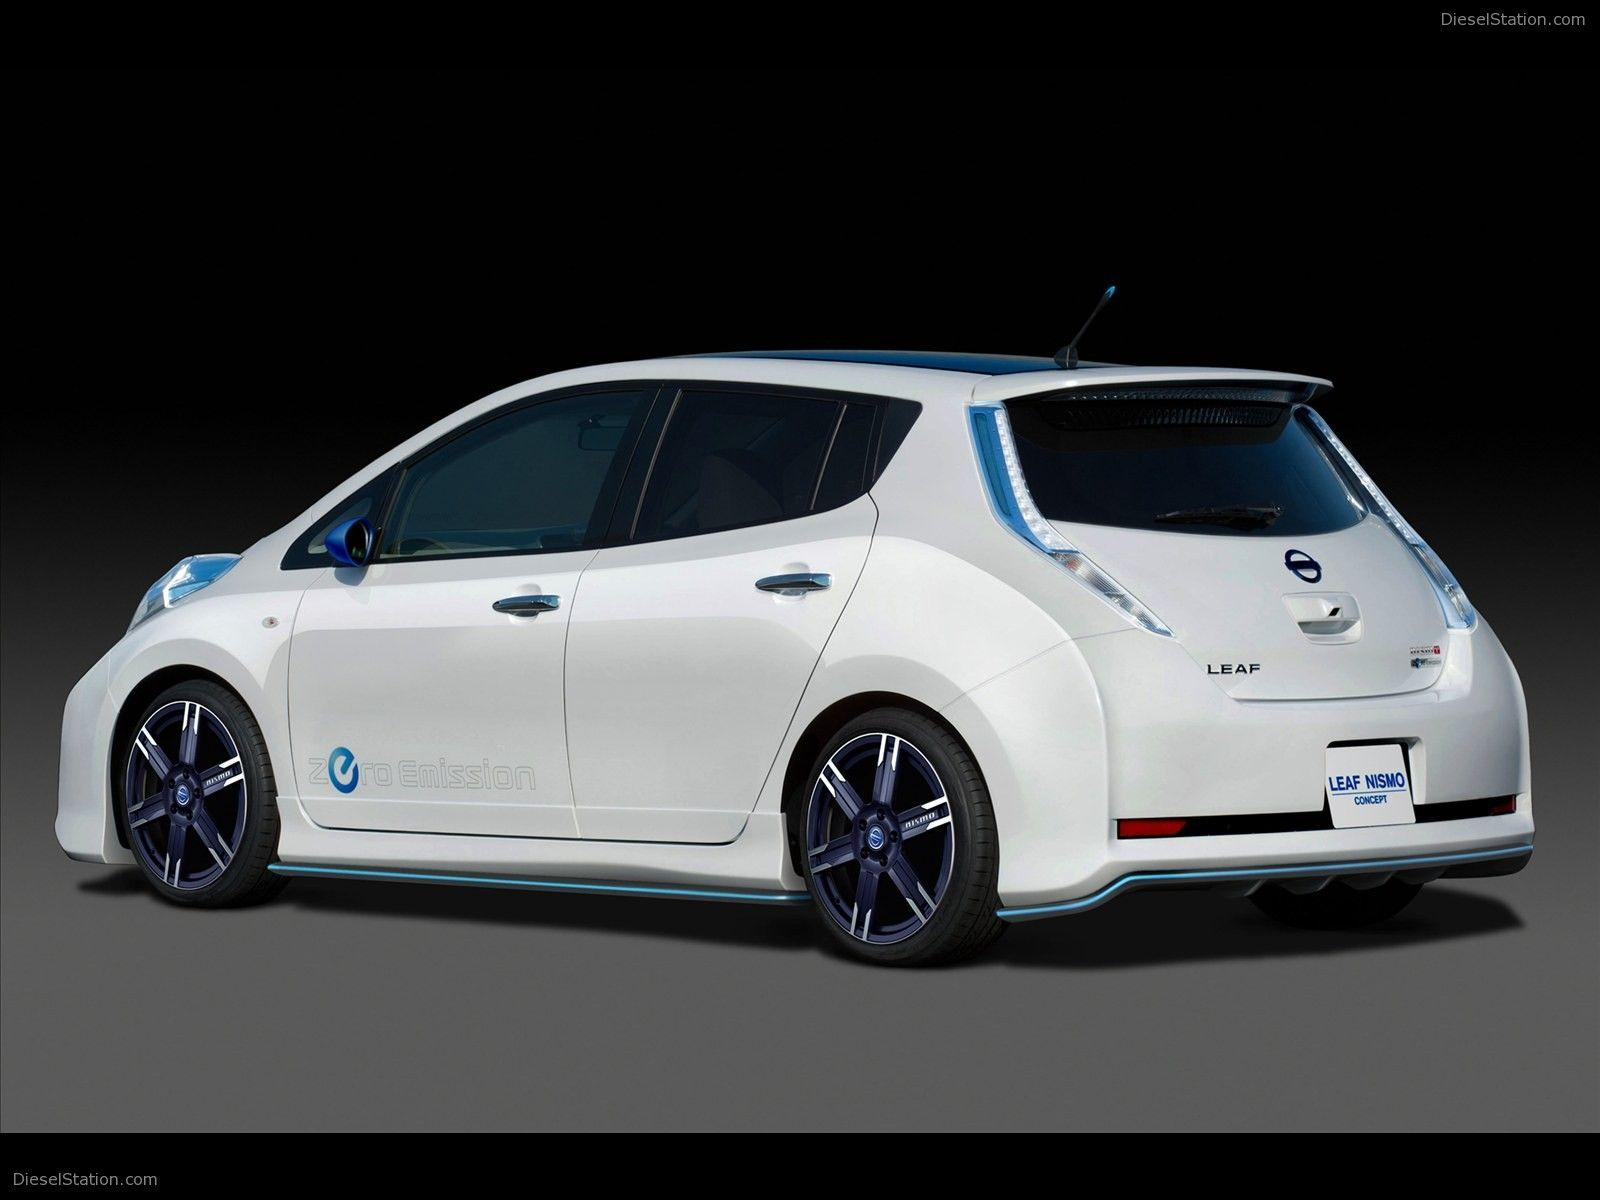 Nissan LEAF NISMO Concept 2012 Exotic Car Wallpapers #02 of 4 ...